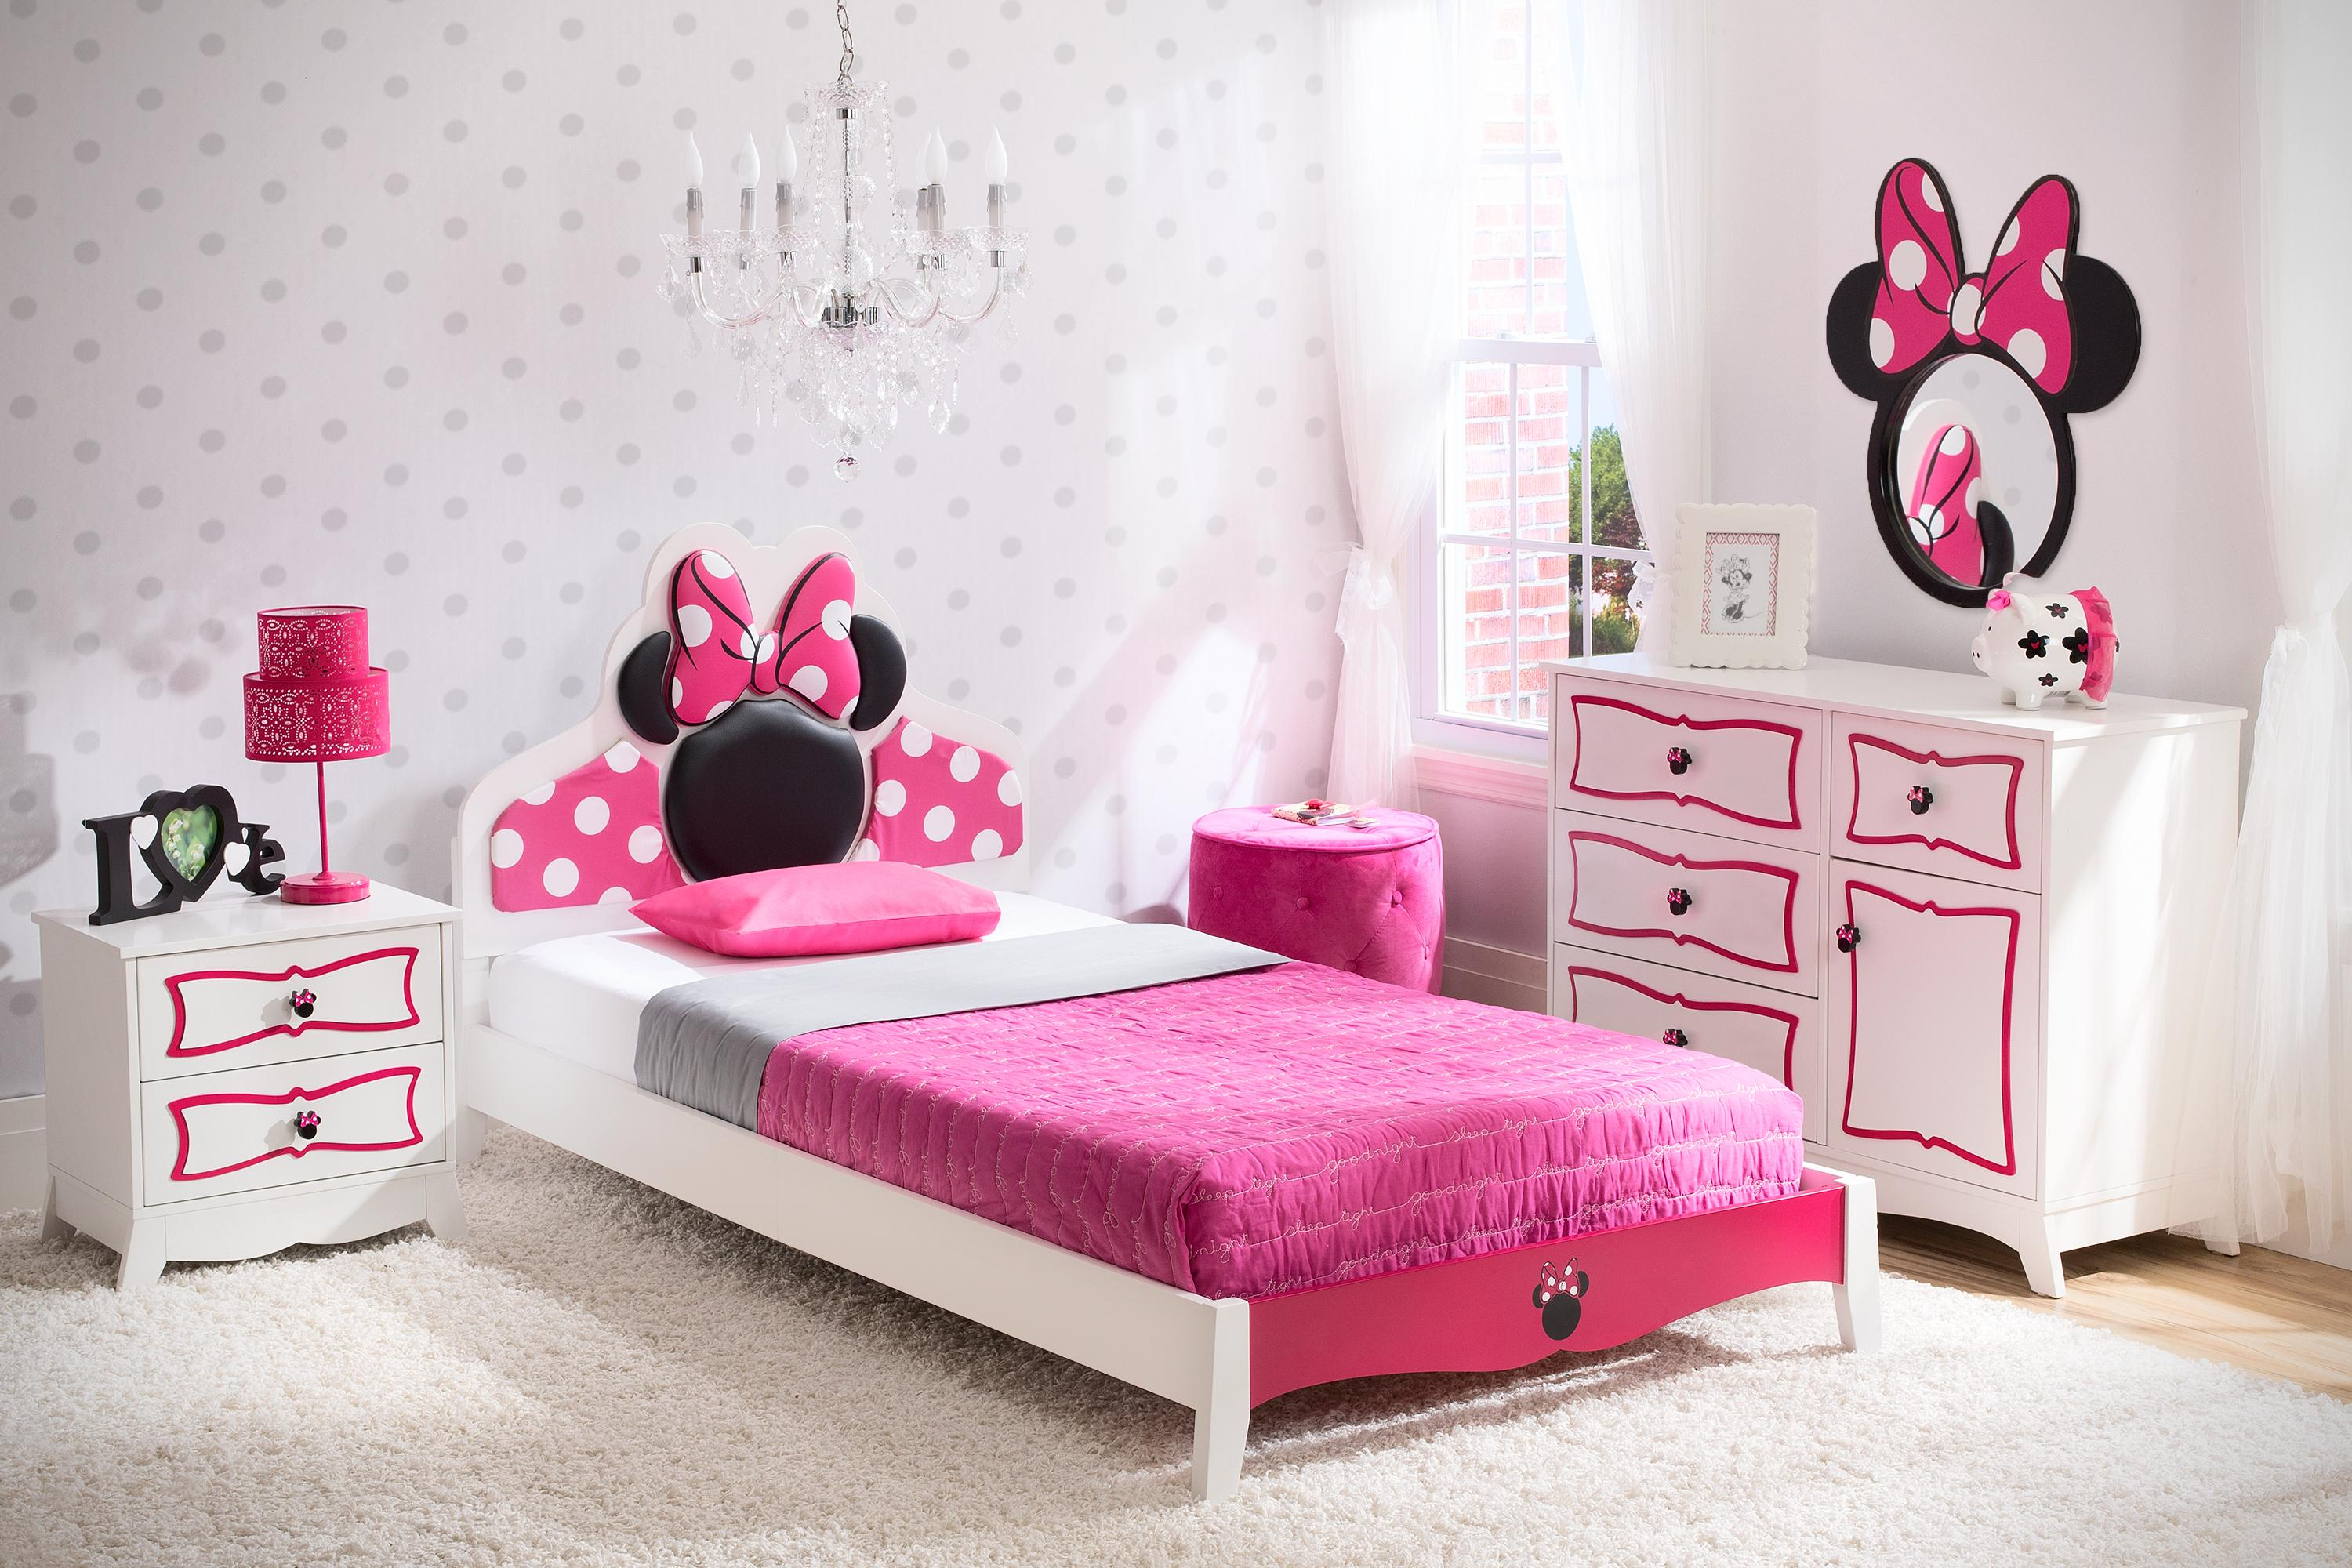 kids twin bedroom sets. Minnie Mouse Twin Bedroom Collection  From Delta Children View larger Amazon com Disney